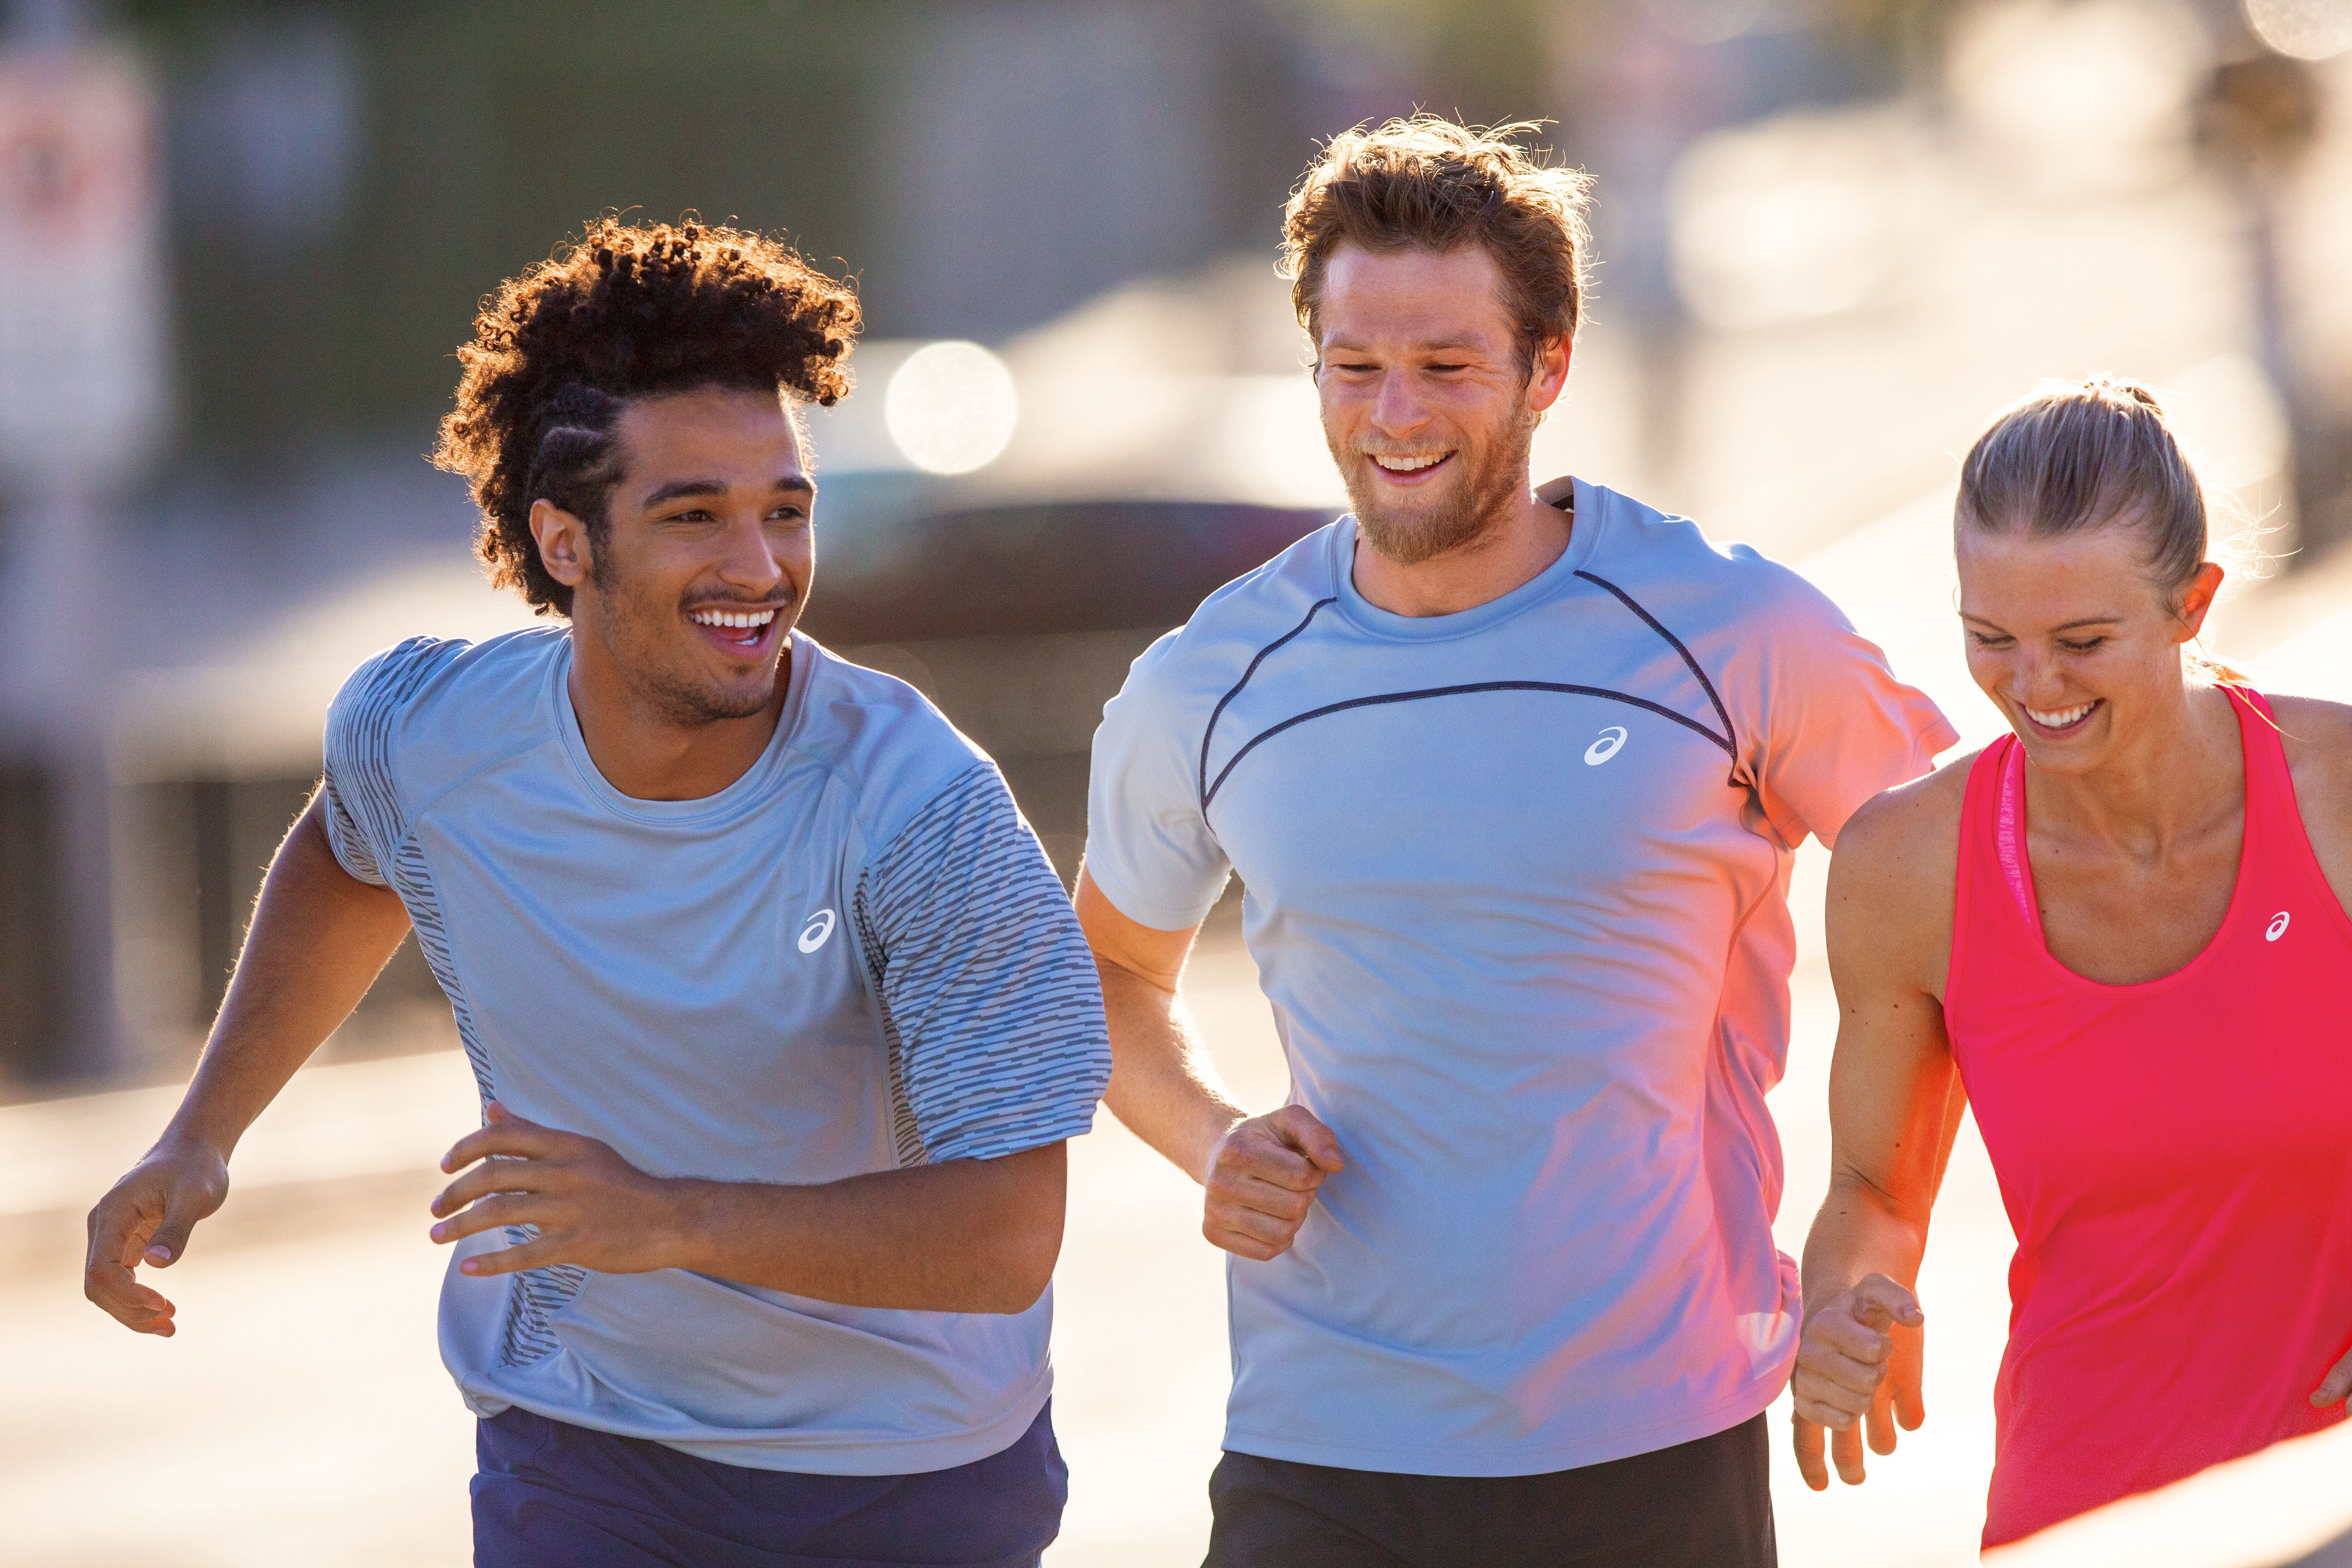 Summer Running Gear: Staying Cool in